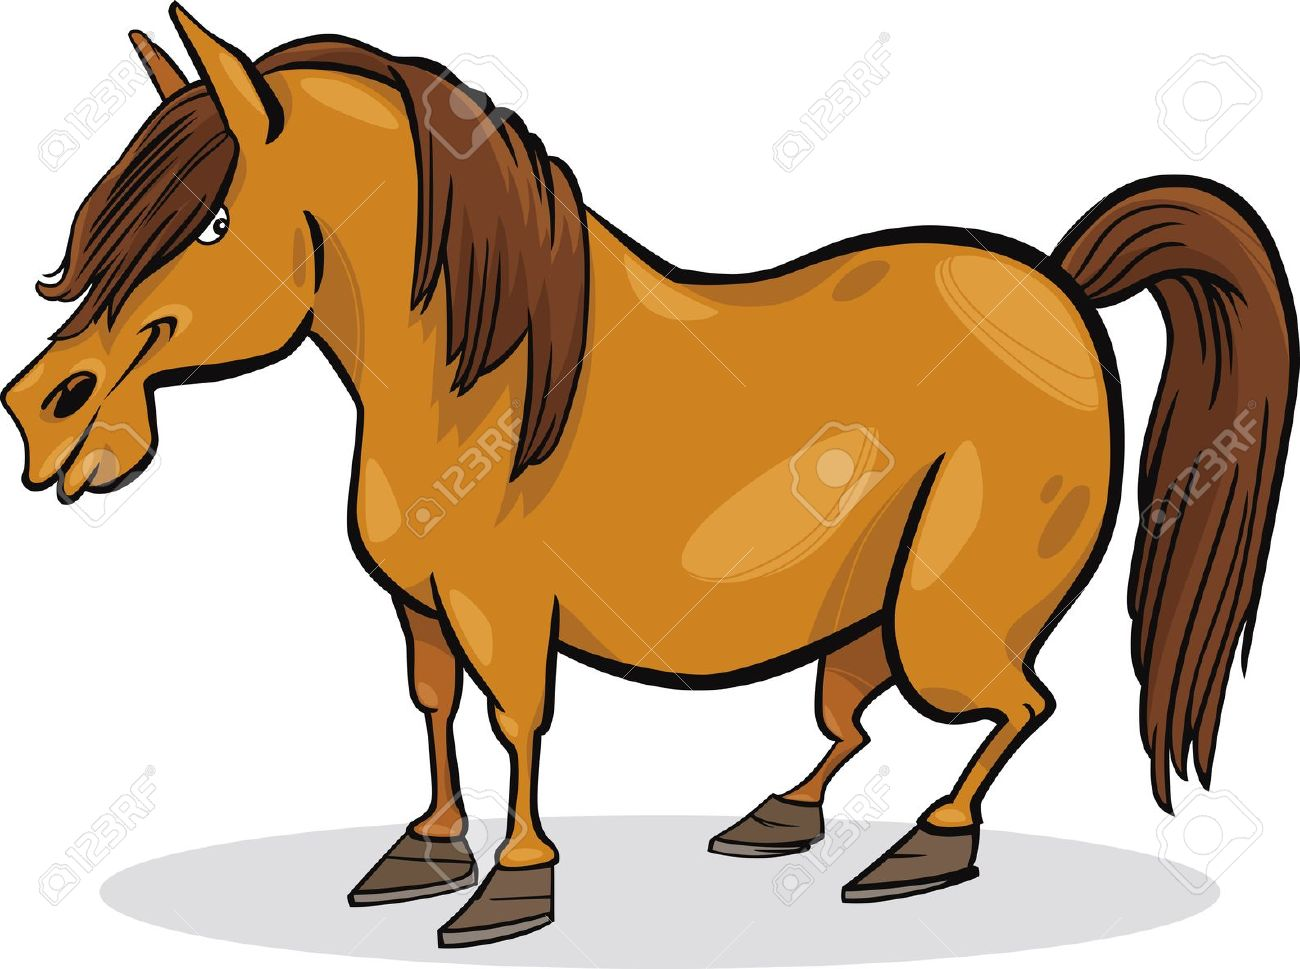 Cartoon Illustration Of Funny Farm Pony Horse Royalty Free.